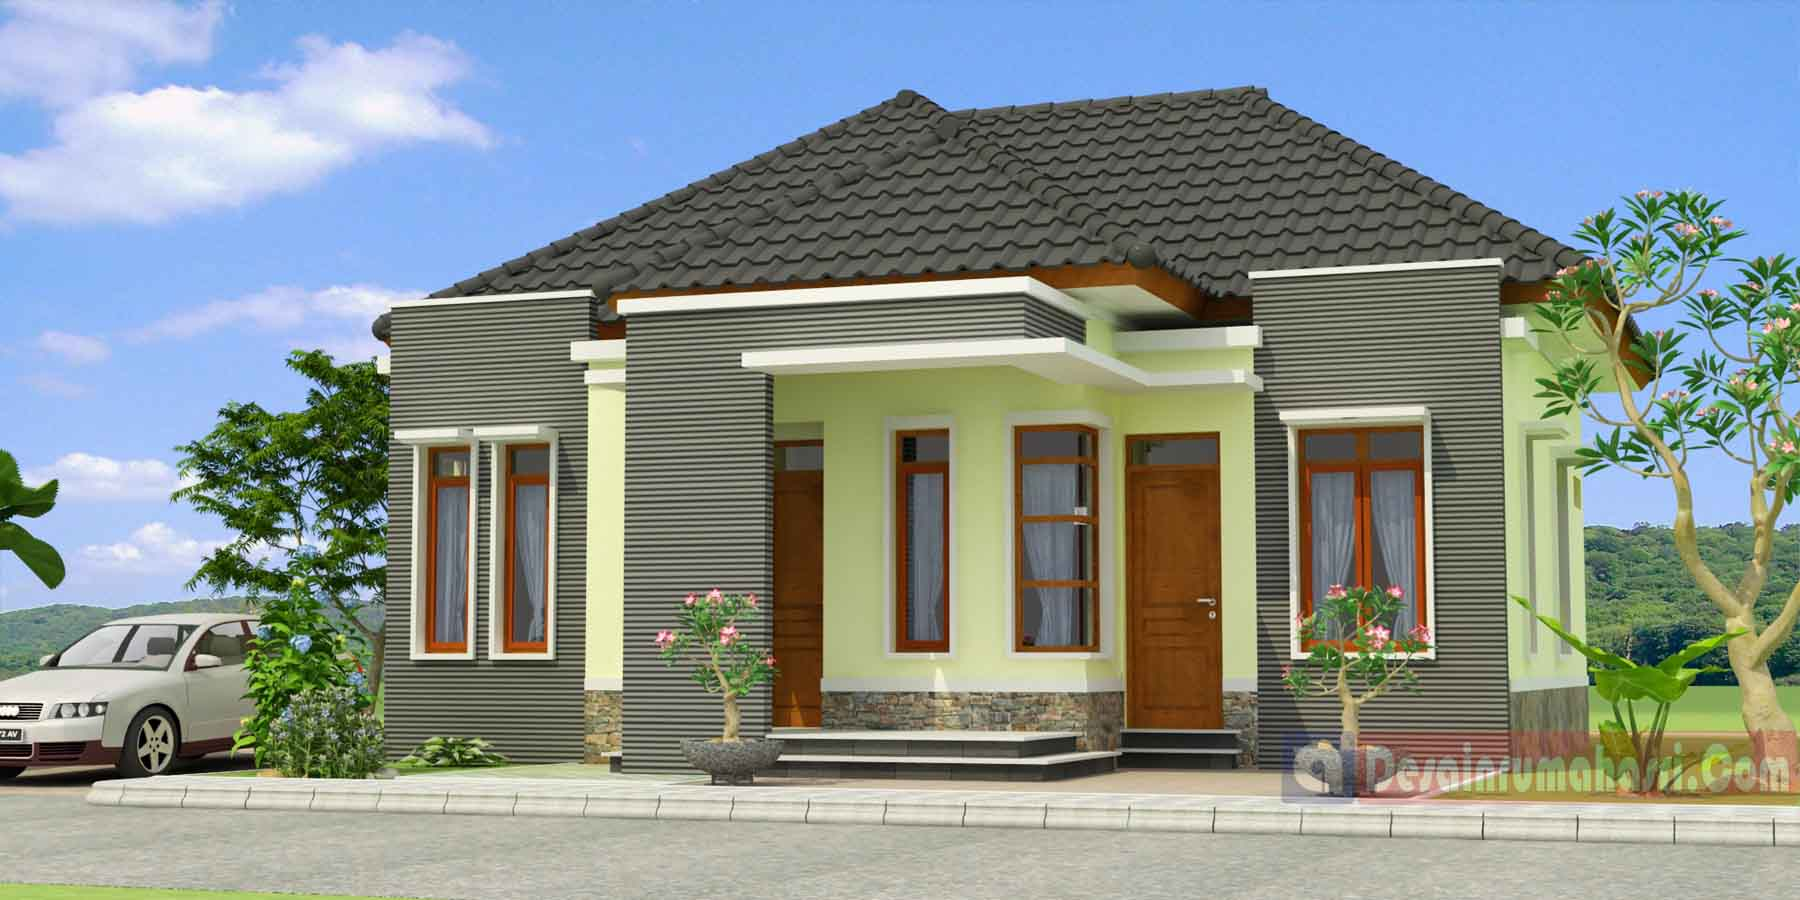 rumah idaman kita share the knownledge